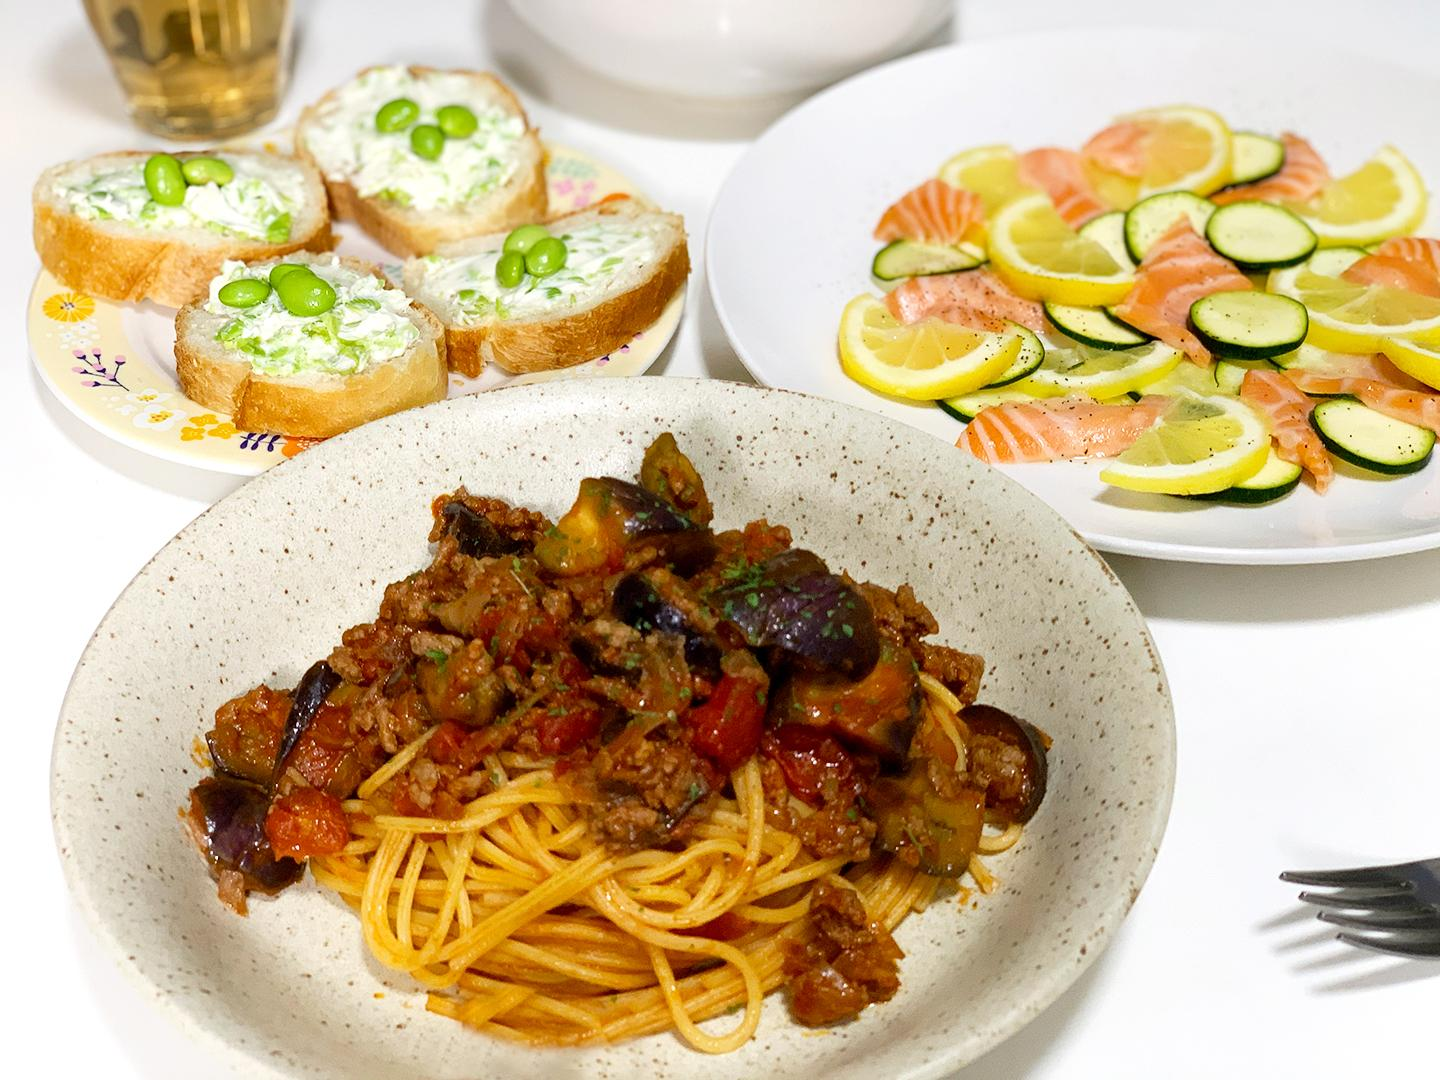 Delicious thing easily wants to eat! Image which created Italian-style dinner